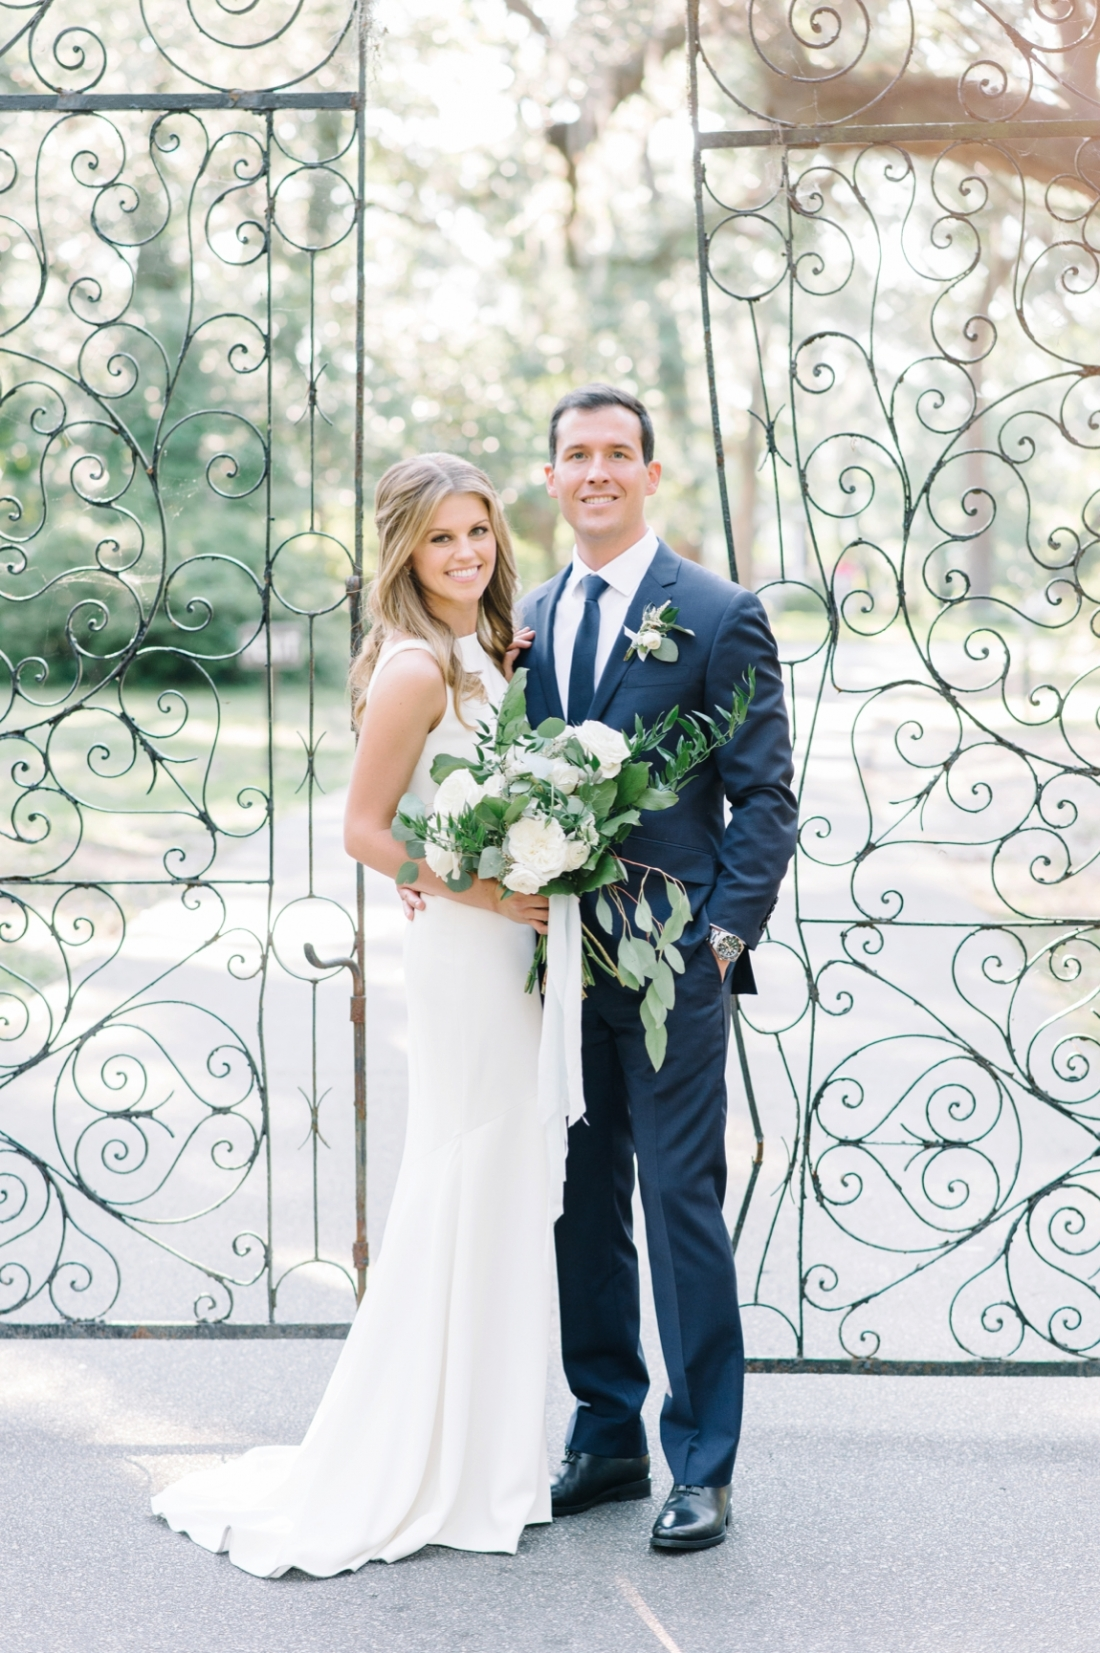 Legare Waring House elopement in Charleston, SC wedding photography by Aaron and Jillian Photography_0067